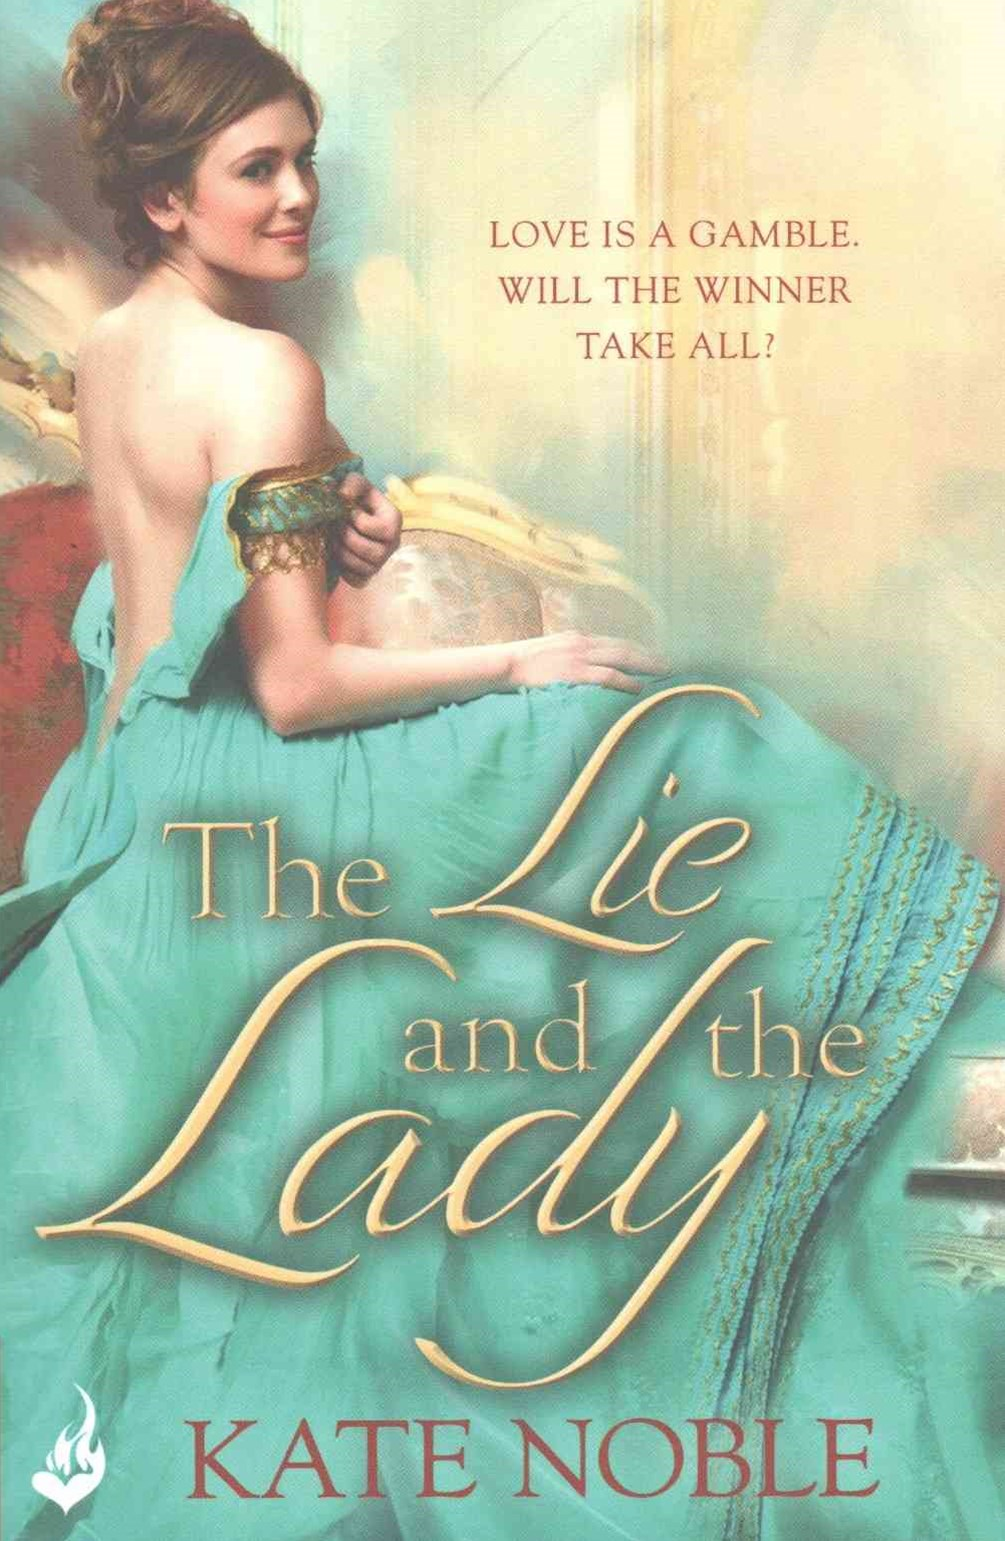 The Lie and the Lady: Winner Takes All 2